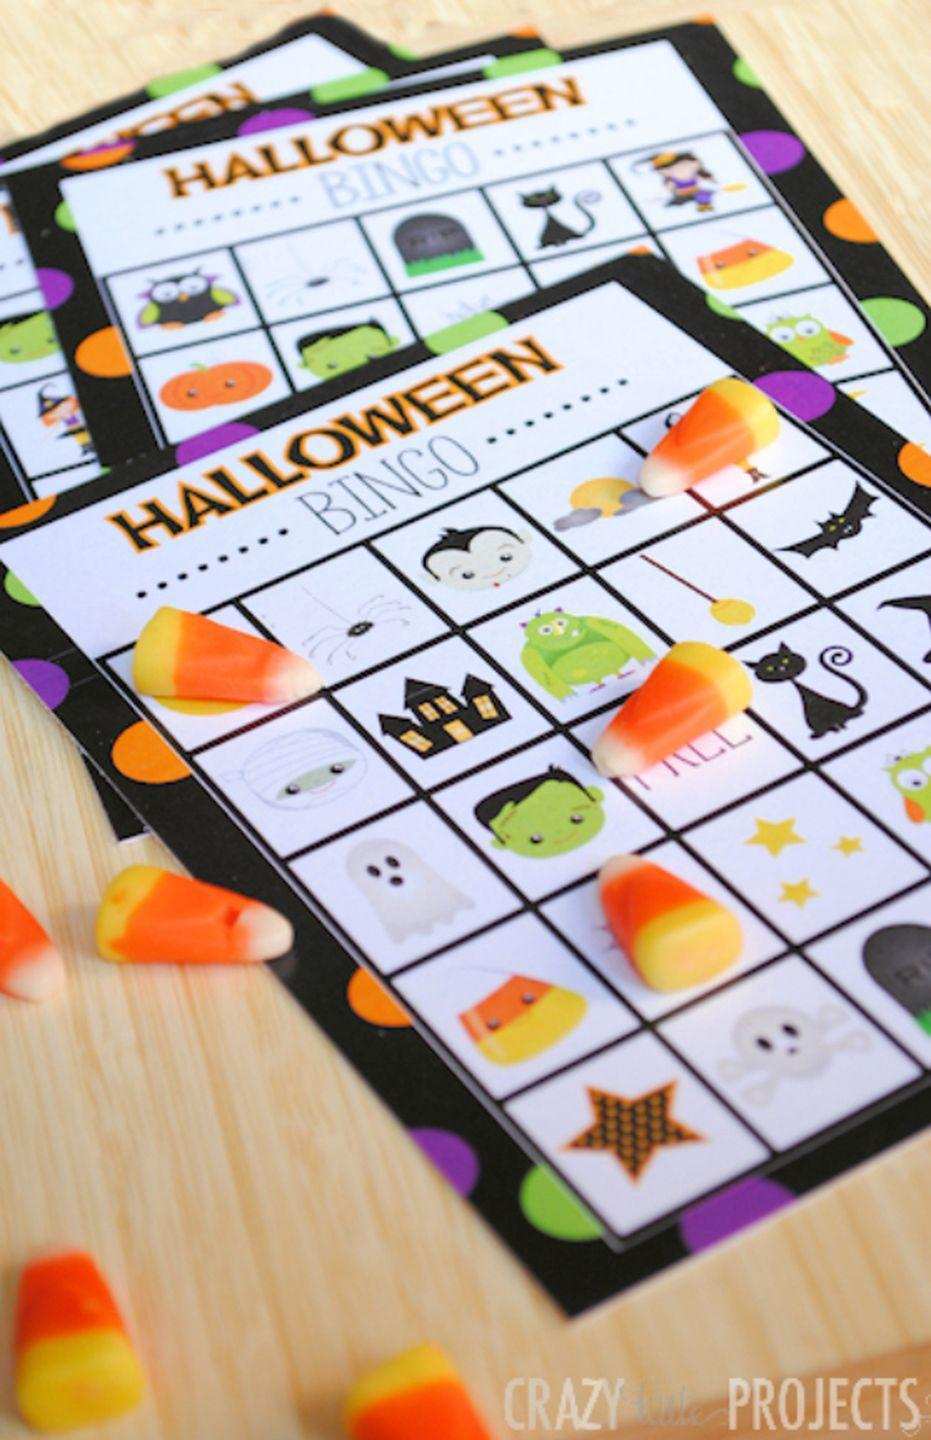 "<p>Host a game night and play this themed version of Bingo with festive candy corn markers! </p><p><strong>Get the tutorial at <a href=""https://crazylittleprojects.com/free-printable-halloween-bingo-game/"" rel=""nofollow noopener"" target=""_blank"" data-ylk=""slk:Crazy Little Projects"" class=""link rapid-noclick-resp"">Crazy Little Projects</a>.</strong></p><p><strong><a class=""link rapid-noclick-resp"" href=""https://www.amazon.com/Oh-Gourmet-Halloween-Wholesale-Pricing/dp/B07HJGJVQQ/?tag=syn-yahoo-20&ascsubtag=%5Bartid%7C2139.g.34440360%5Bsrc%7Cyahoo-us"" rel=""nofollow noopener"" target=""_blank"" data-ylk=""slk:SHOP CANDY CORN"">SHOP CANDY CORN</a><br></strong></p>"